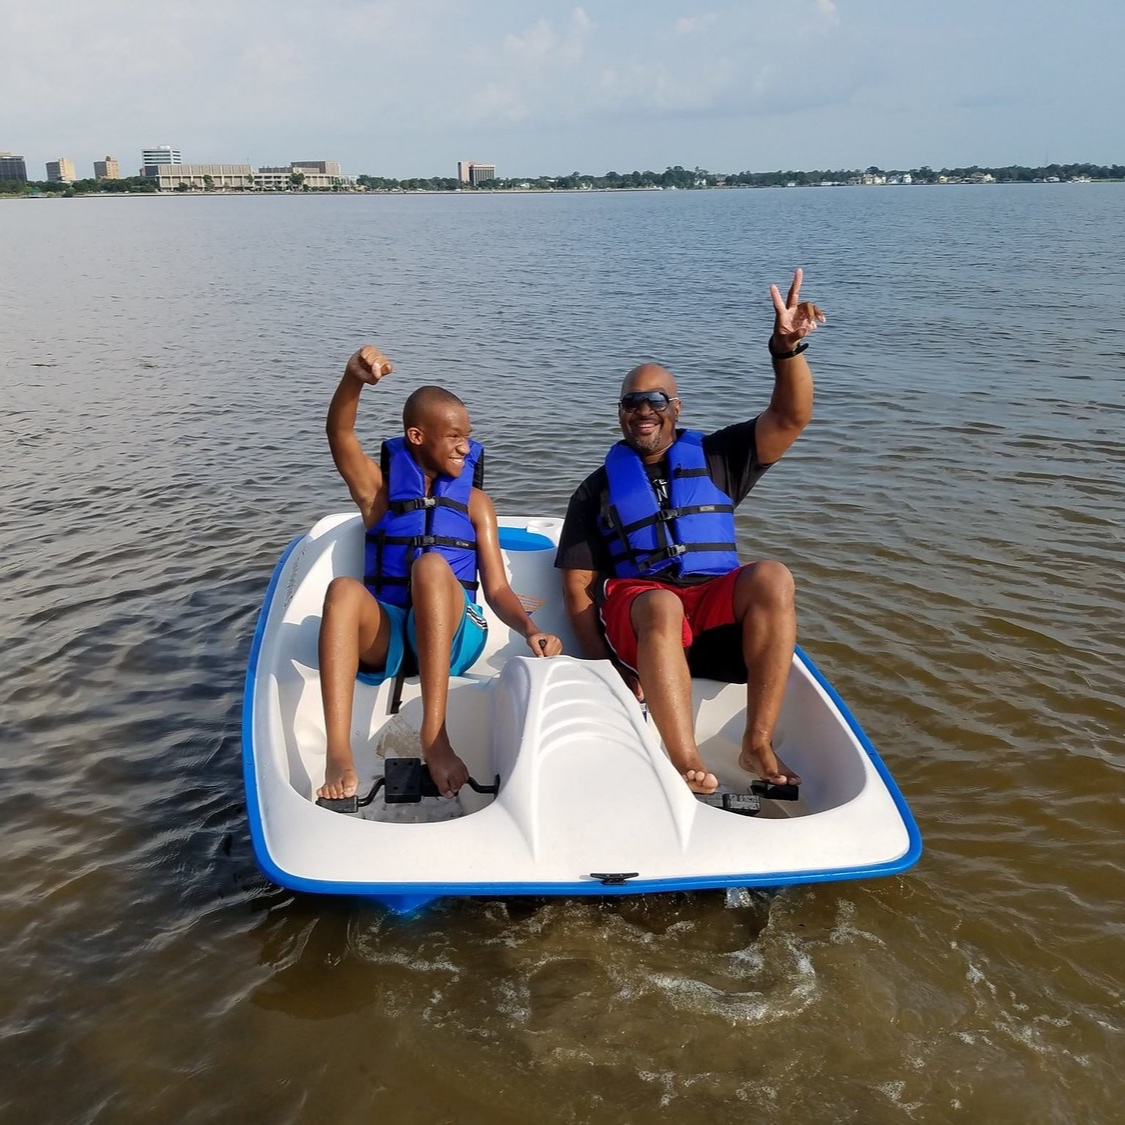 KAYAKS & PADDLE BOATS - RENTAL RATES:2 HOUR - $354 HOUR - $408 HOUR - $50+ $25 delivery fee unless you pick up.We can hand them over to you at one of three locations: Prien Lake Park Boat Launch, 210 Boat Launch or the I-10 Beach. Need them delivered to another location? Give us a call!